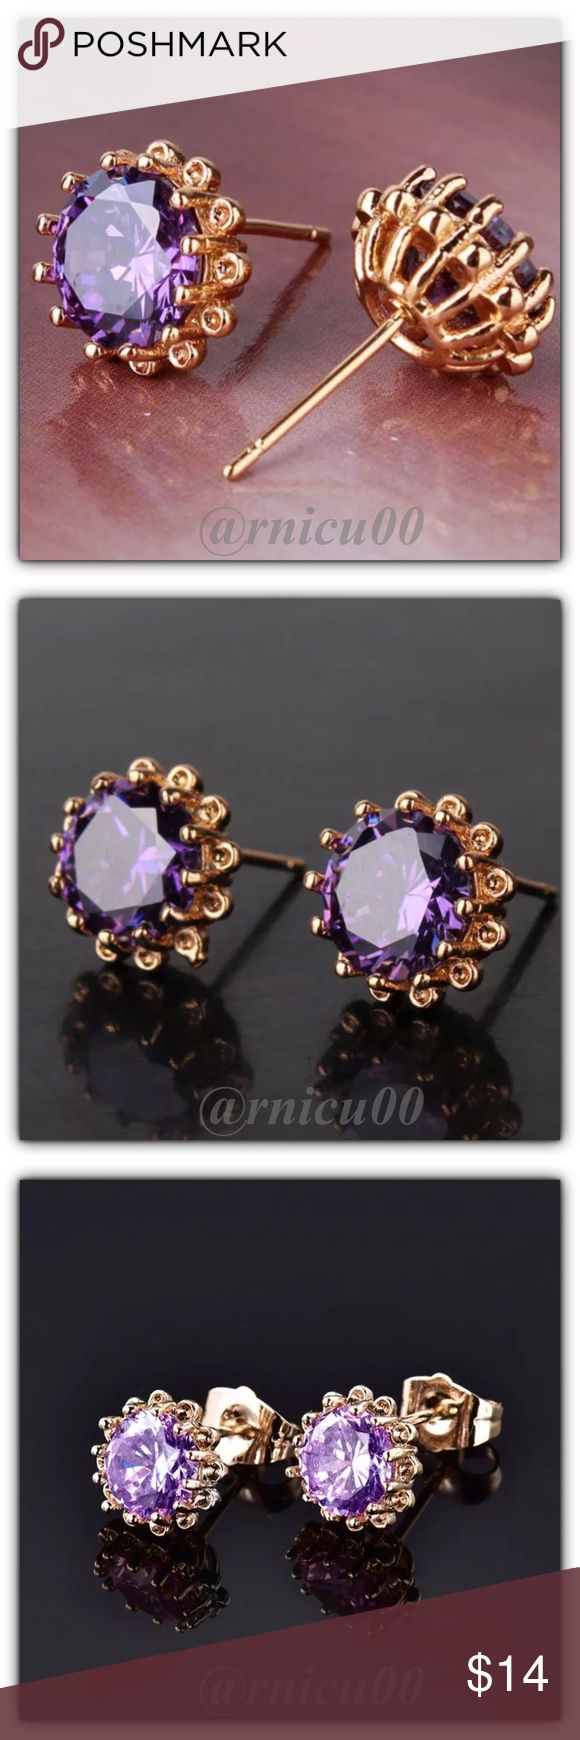 🆕Fave RESTOCK!🆕Amethyst Aster 18K Stud Earrings! 💗Customer Favorite Re-Stock💗New Colors Arrived Today! These are so Beautiful! They have a Budding, Flower Look! Shiny Round Purple Amethyst Stone, Generous size at 8mm👌 (ygfat6-1417-0250)  ✨Will be shipped Securely in Jewelry Box ✨Please see pic 7 for full description👌  *ALL items Marked at Absolute LOWEST Price unless Bundled! *NO TRADES *Sales are Final-Please Read Descriptions! Boutique Jewelry Earrings